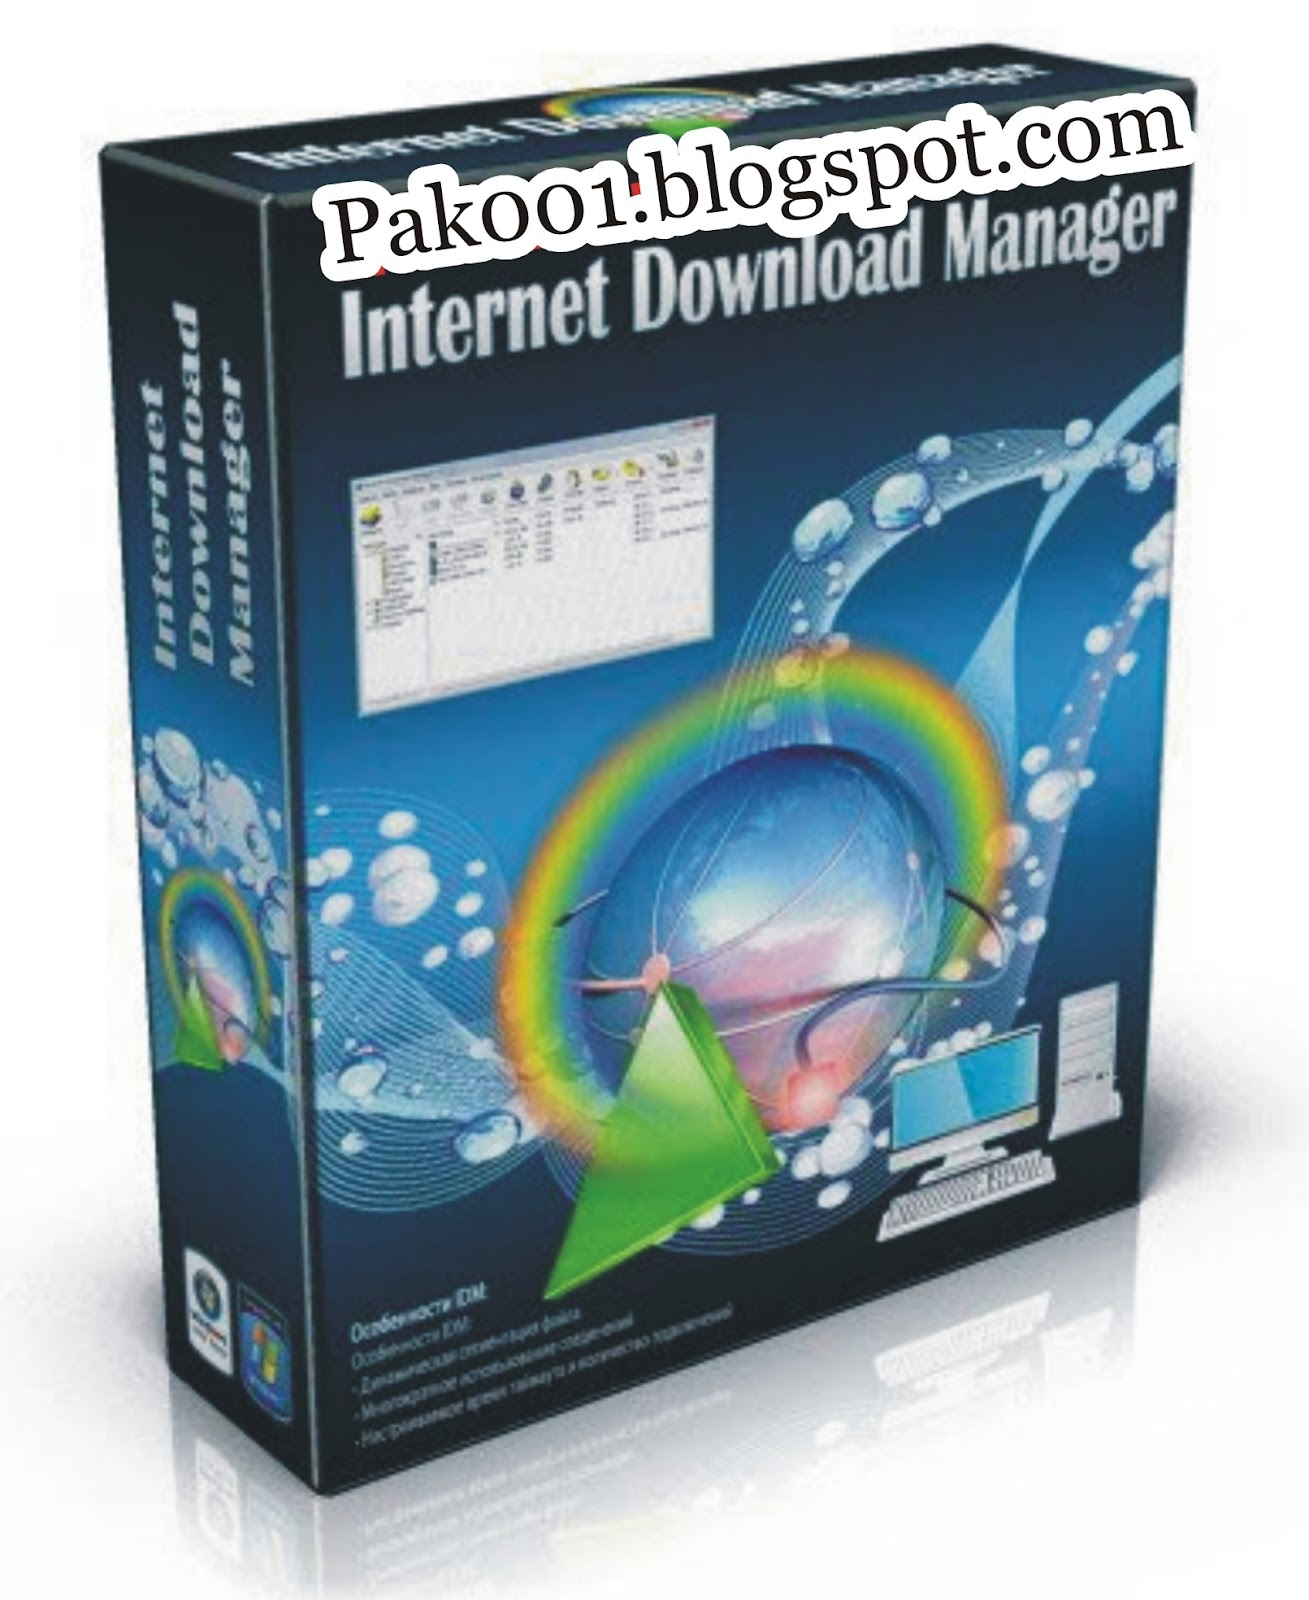 free internet download manager latest version with crack